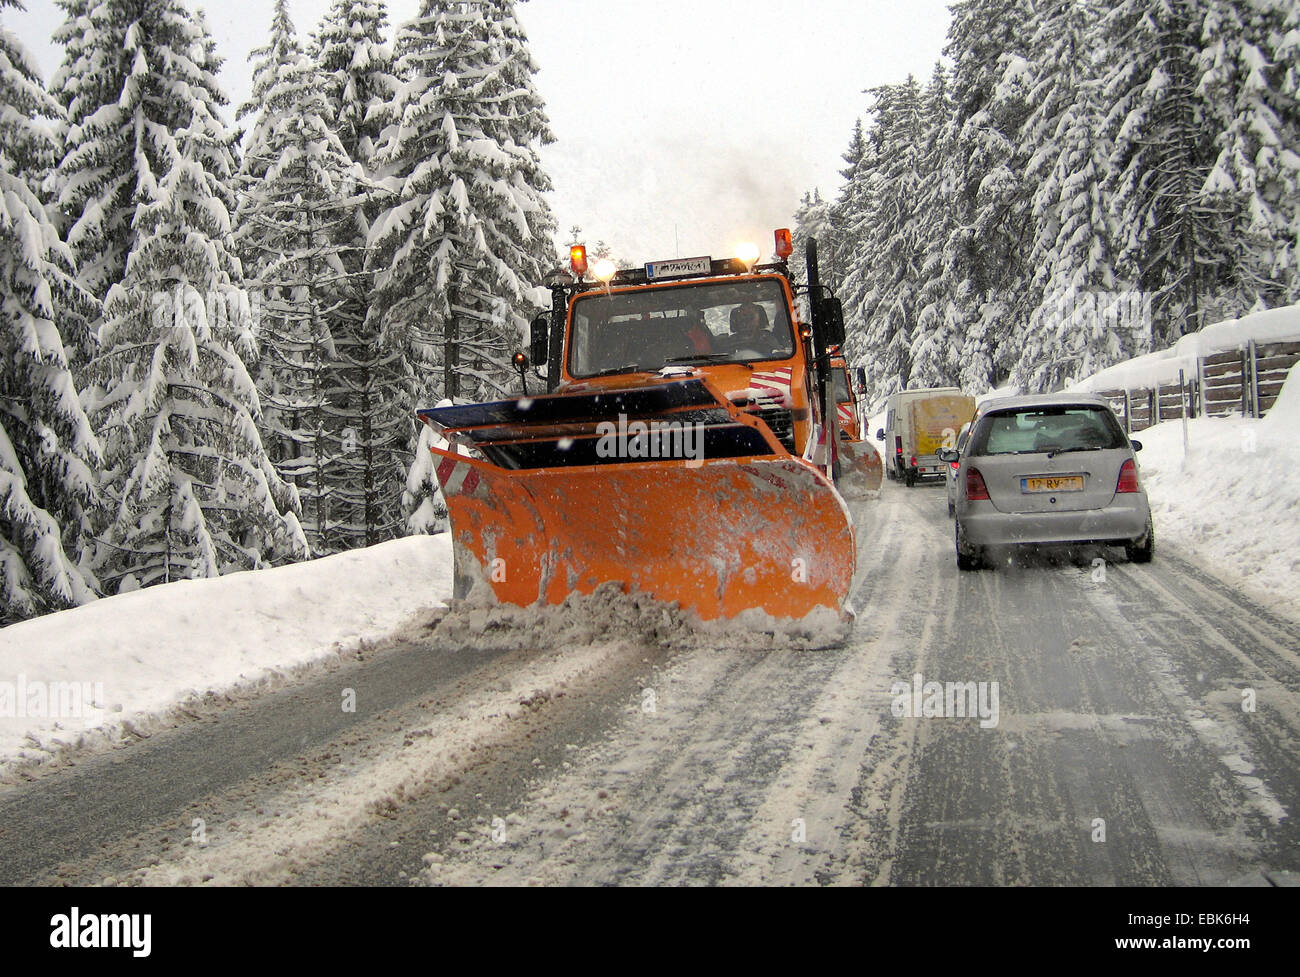 snowplow on winterly country road - Stock Image